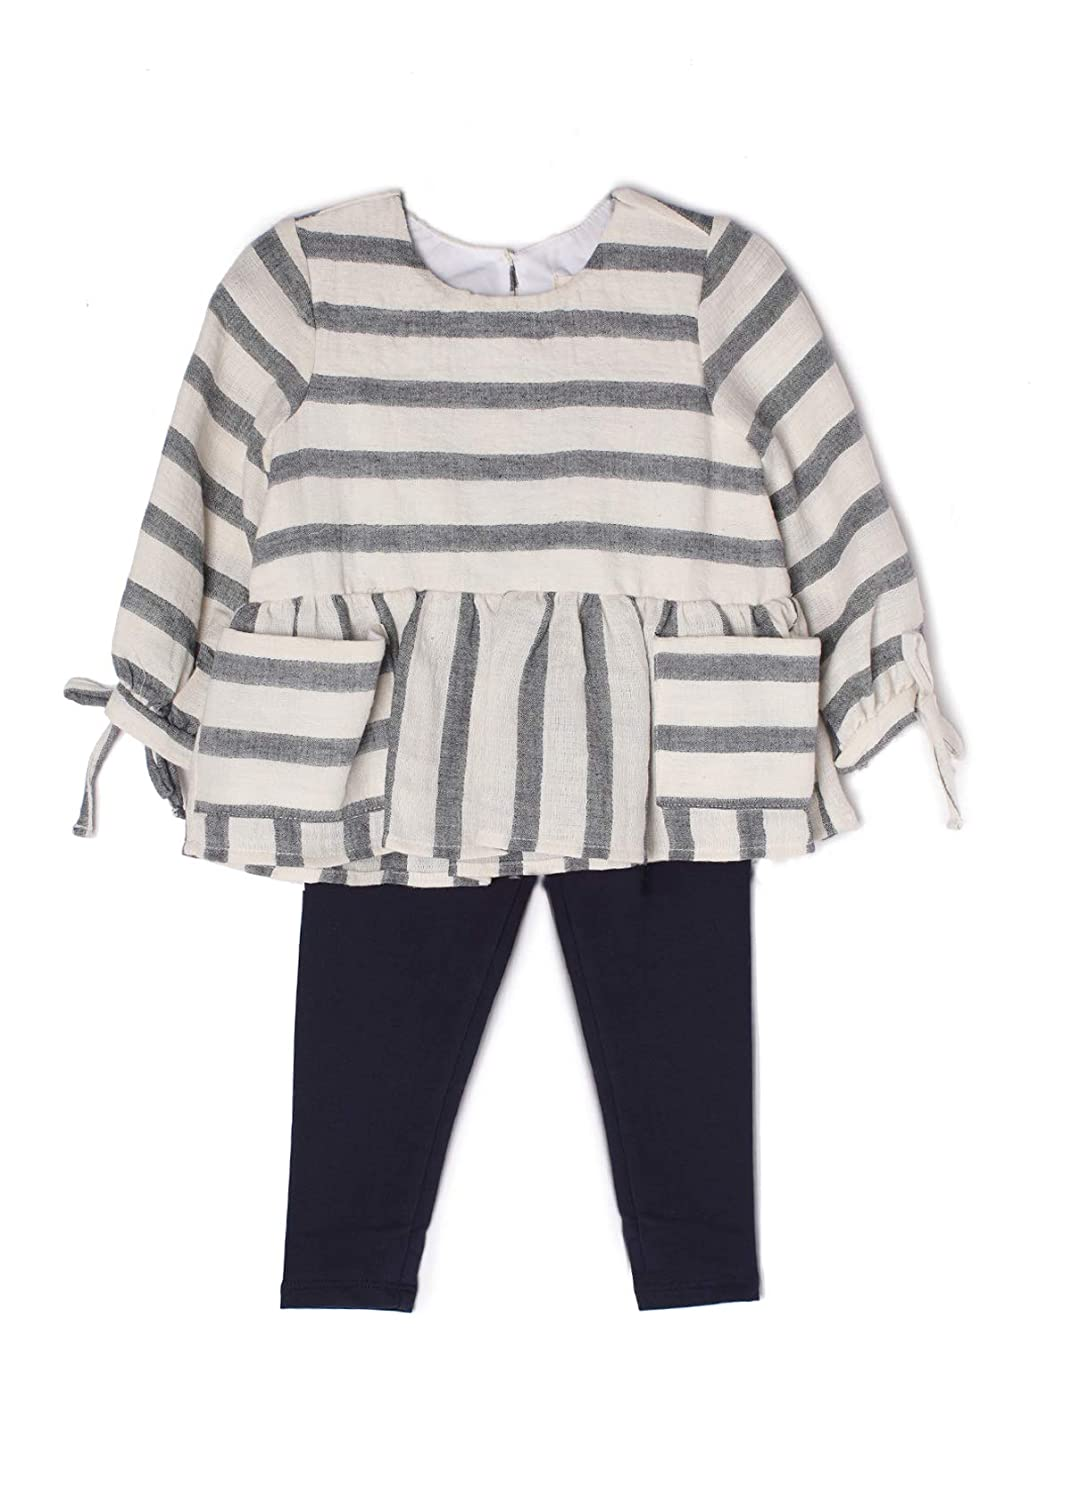 MABEL AND HONEY Toddler Little Girl Big Girl Everyday Wear Pants